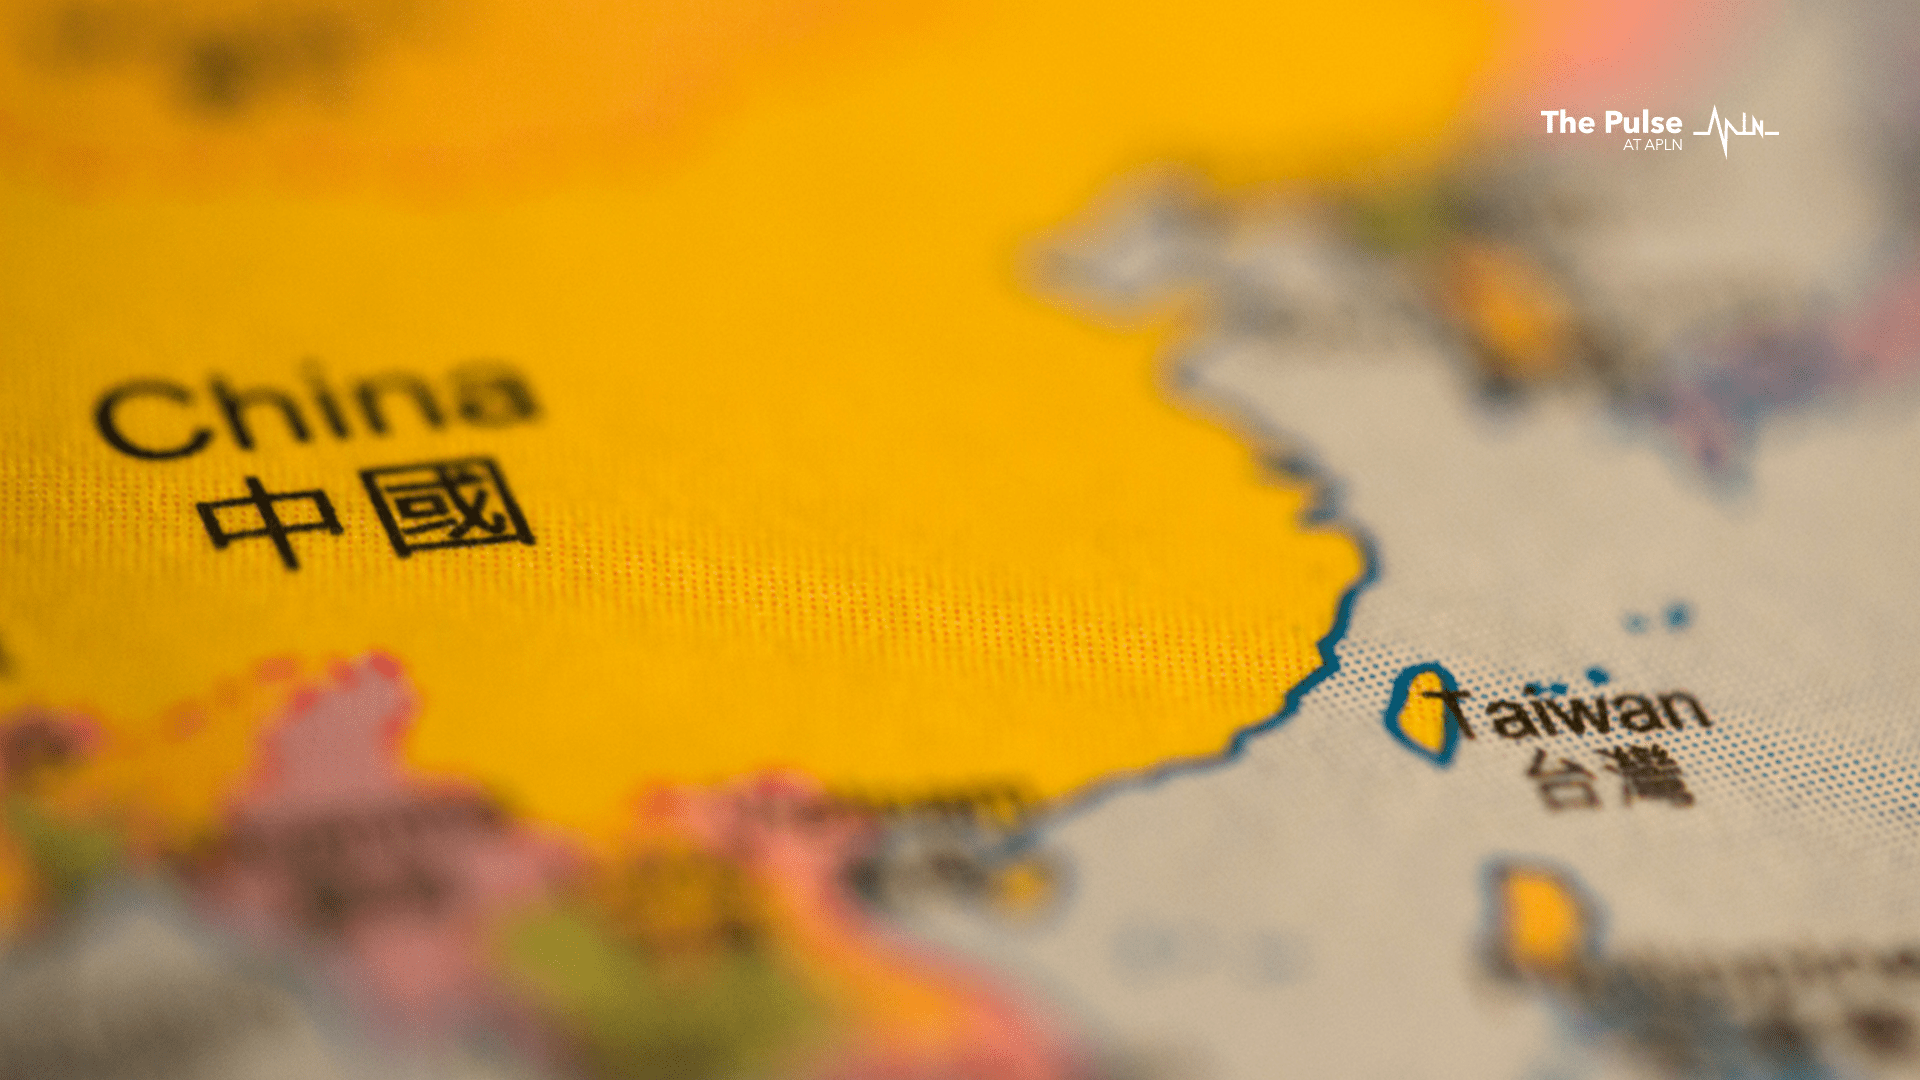 Perspectives on Tensions in the Taiwan Strait